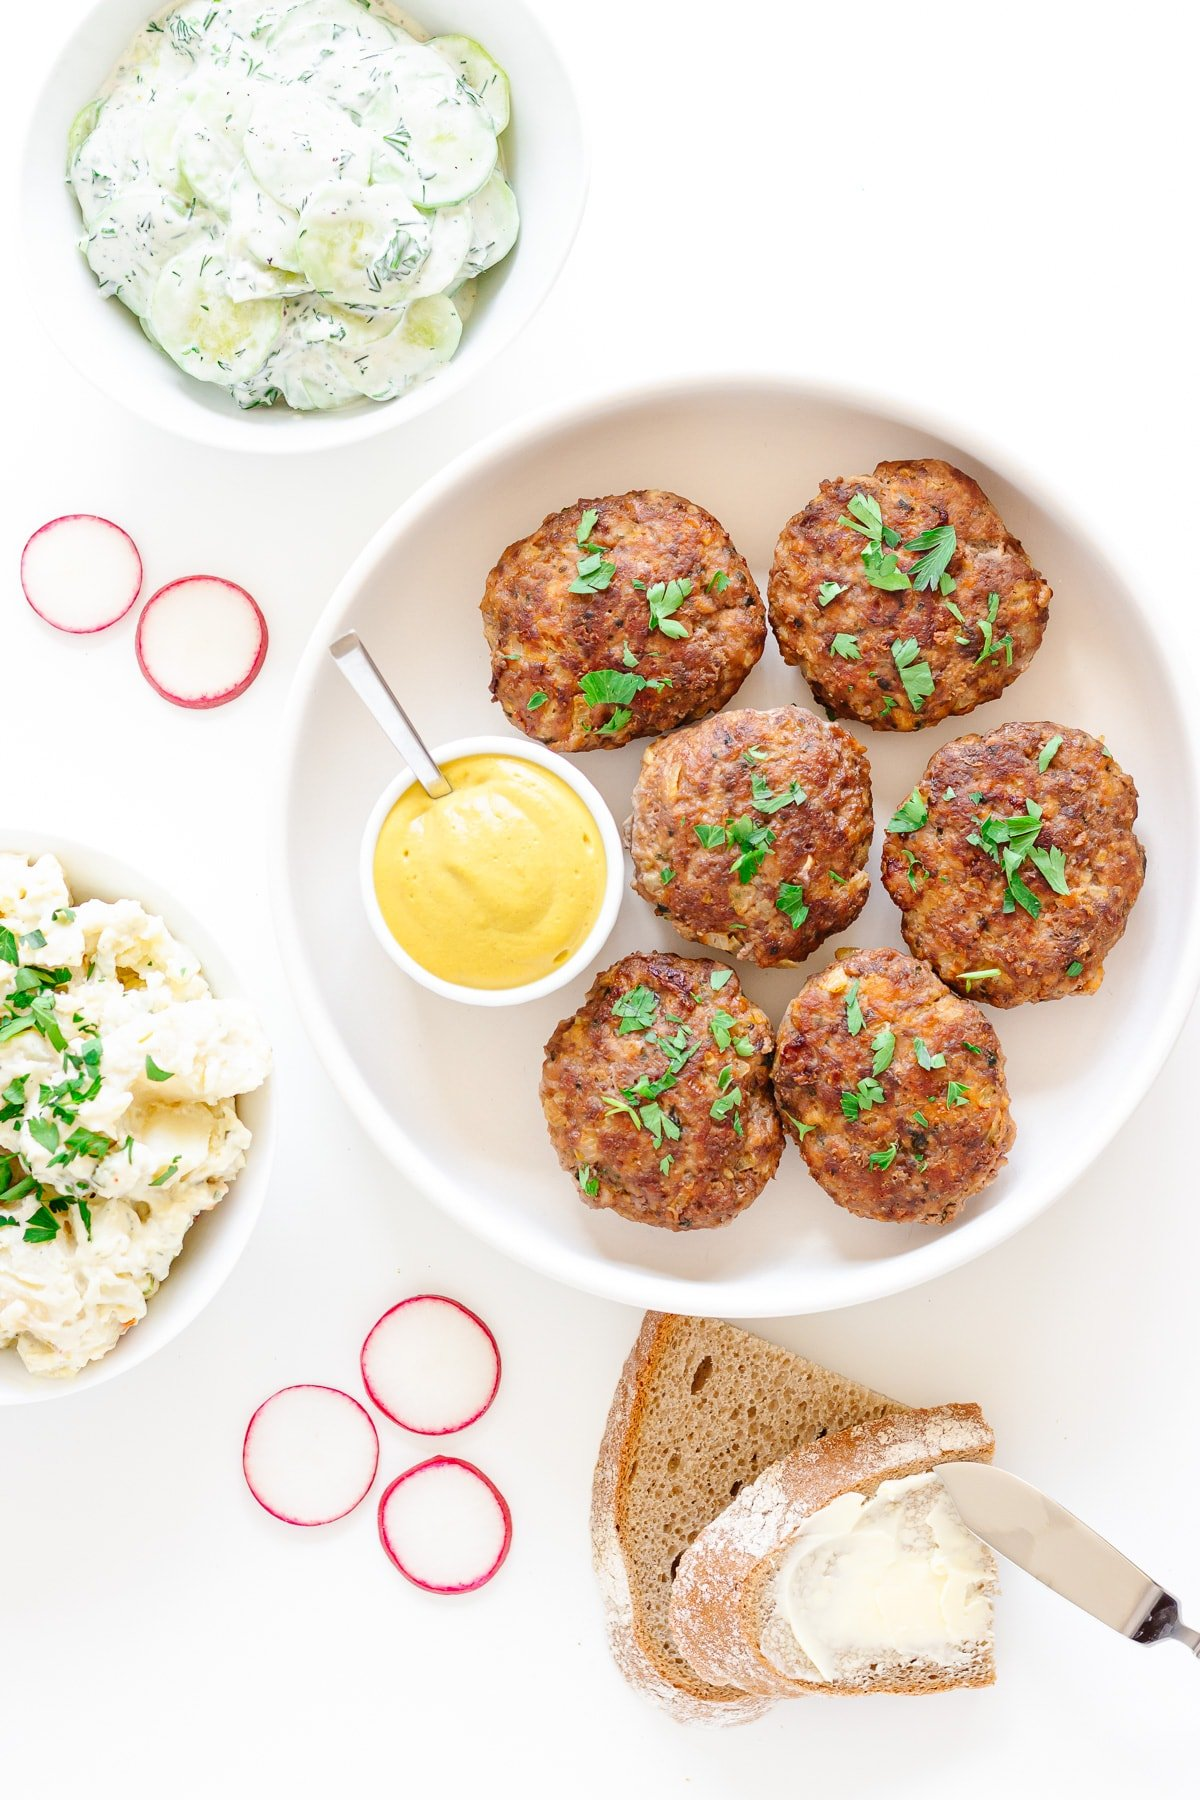 German frikadellen in a round white dish with mustard and scattering of chopped parsley.  Surrounded by cucumber salad, potato salad, German rye bread and radish slices.